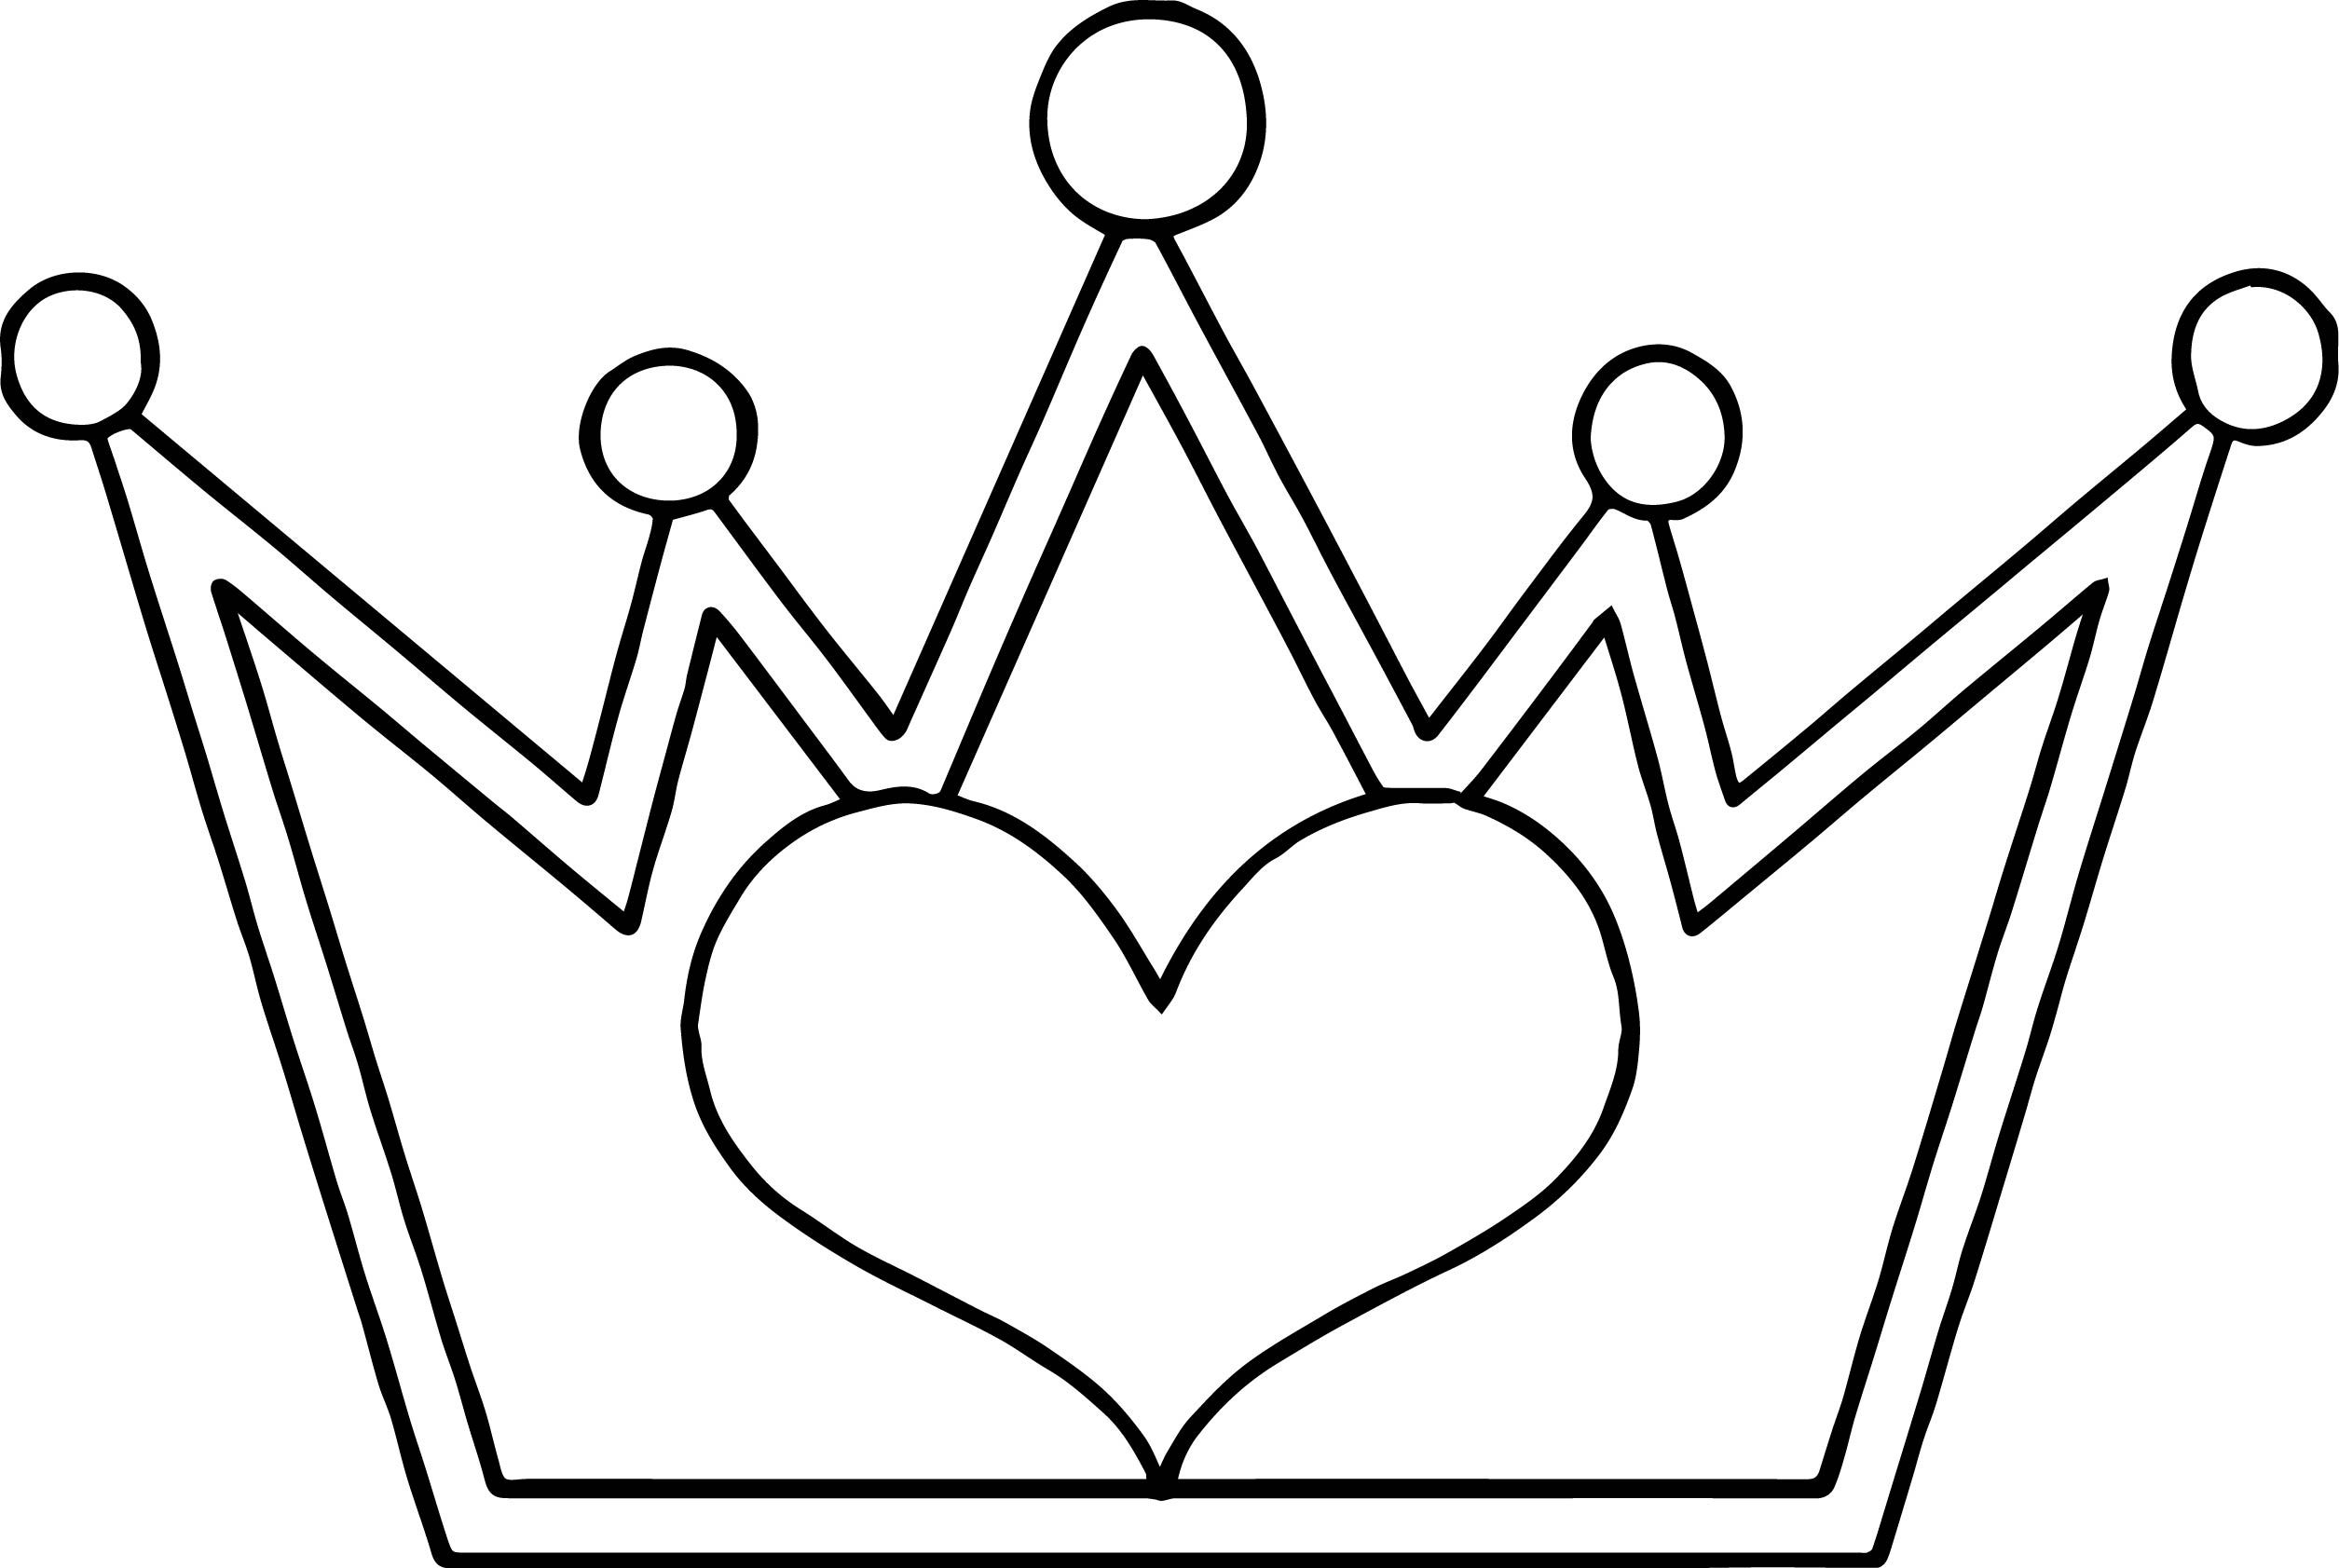 Nice Copies Of This Cute Princess Crown At Least Two Per Guest Coloring Page Crown Template Coloring Pages Crown Printable